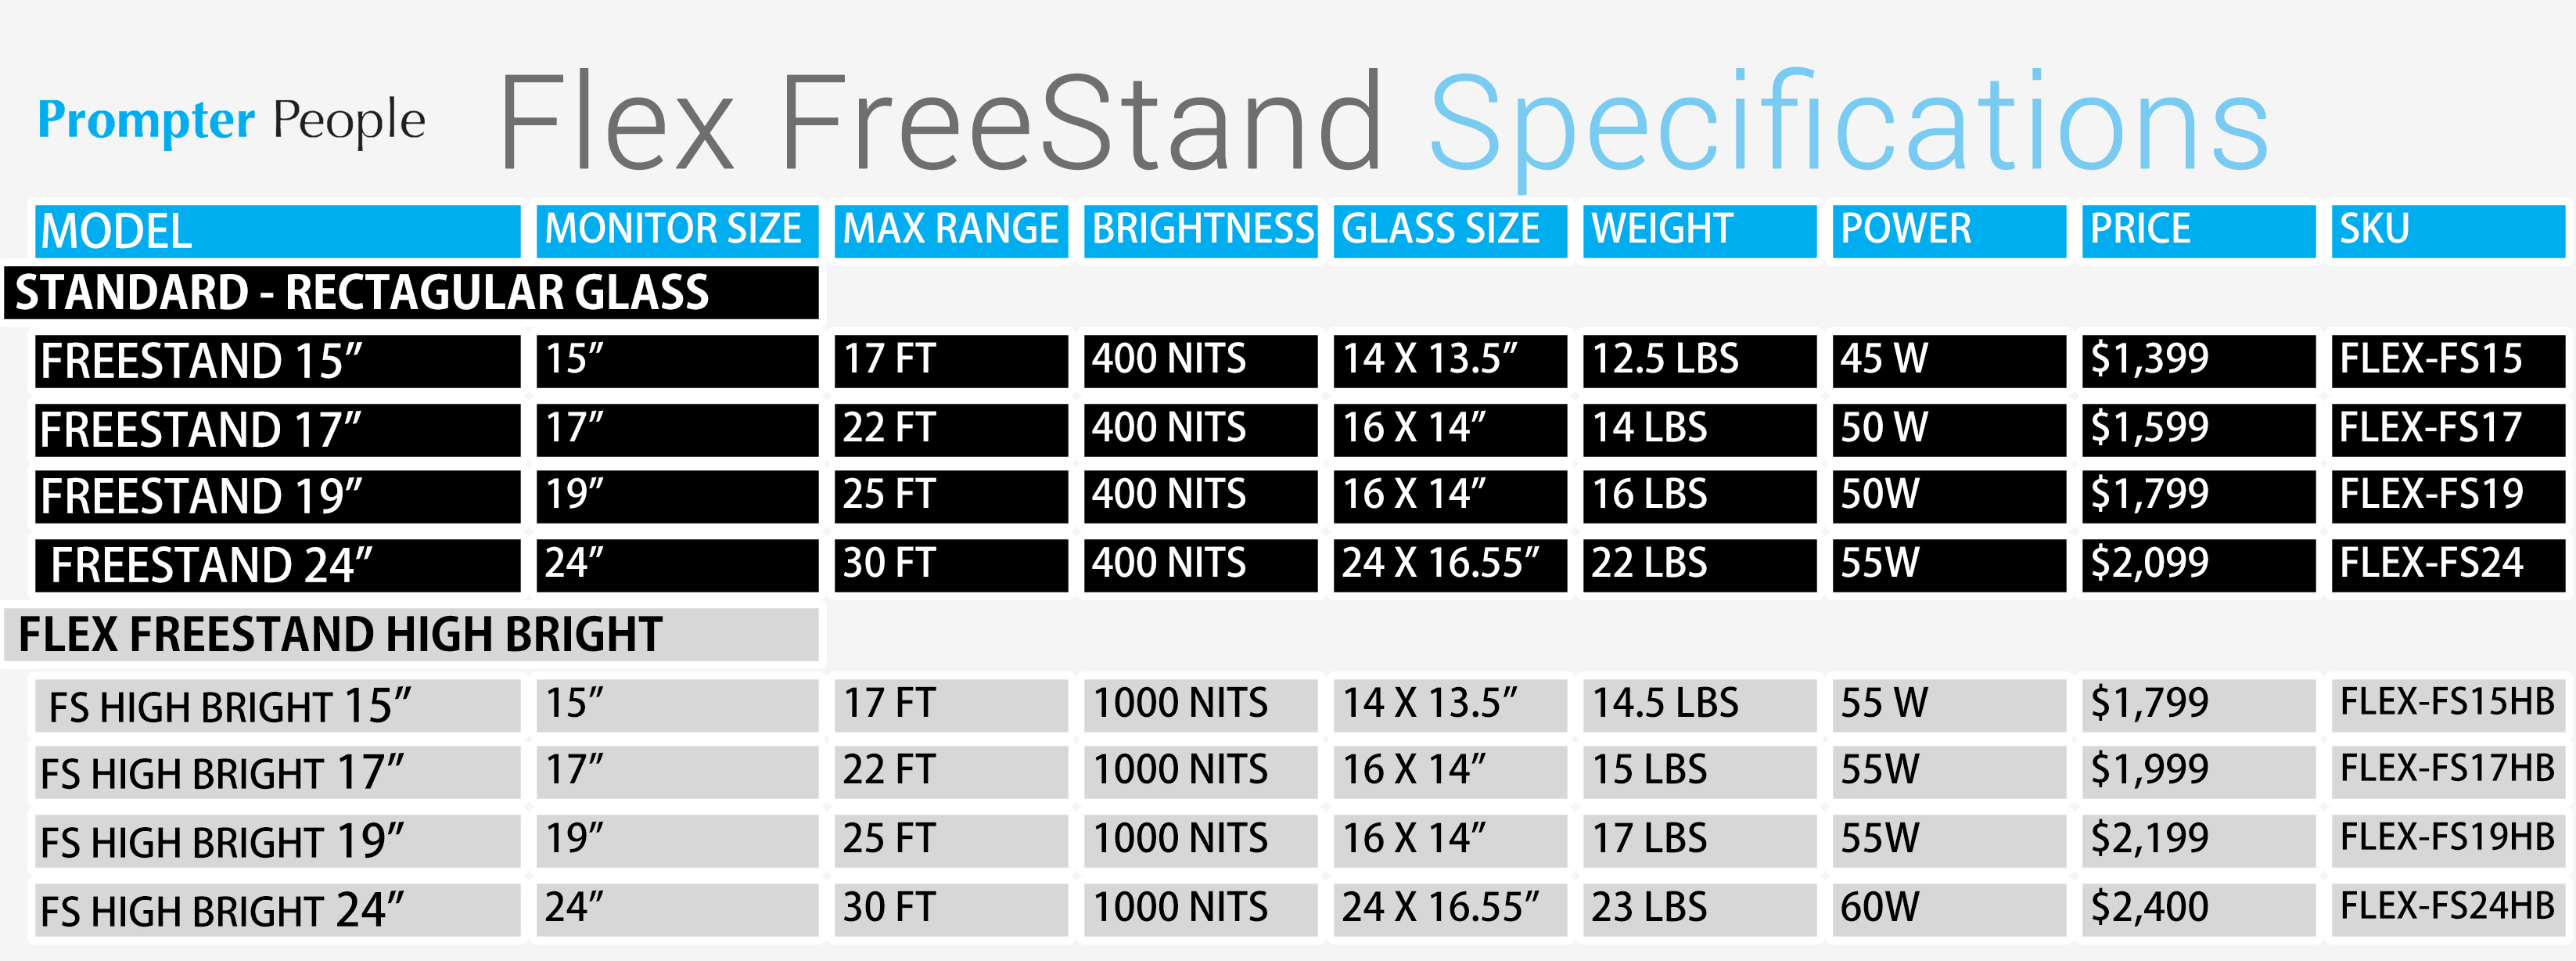 flex-freestand-specifications-grey.jpg